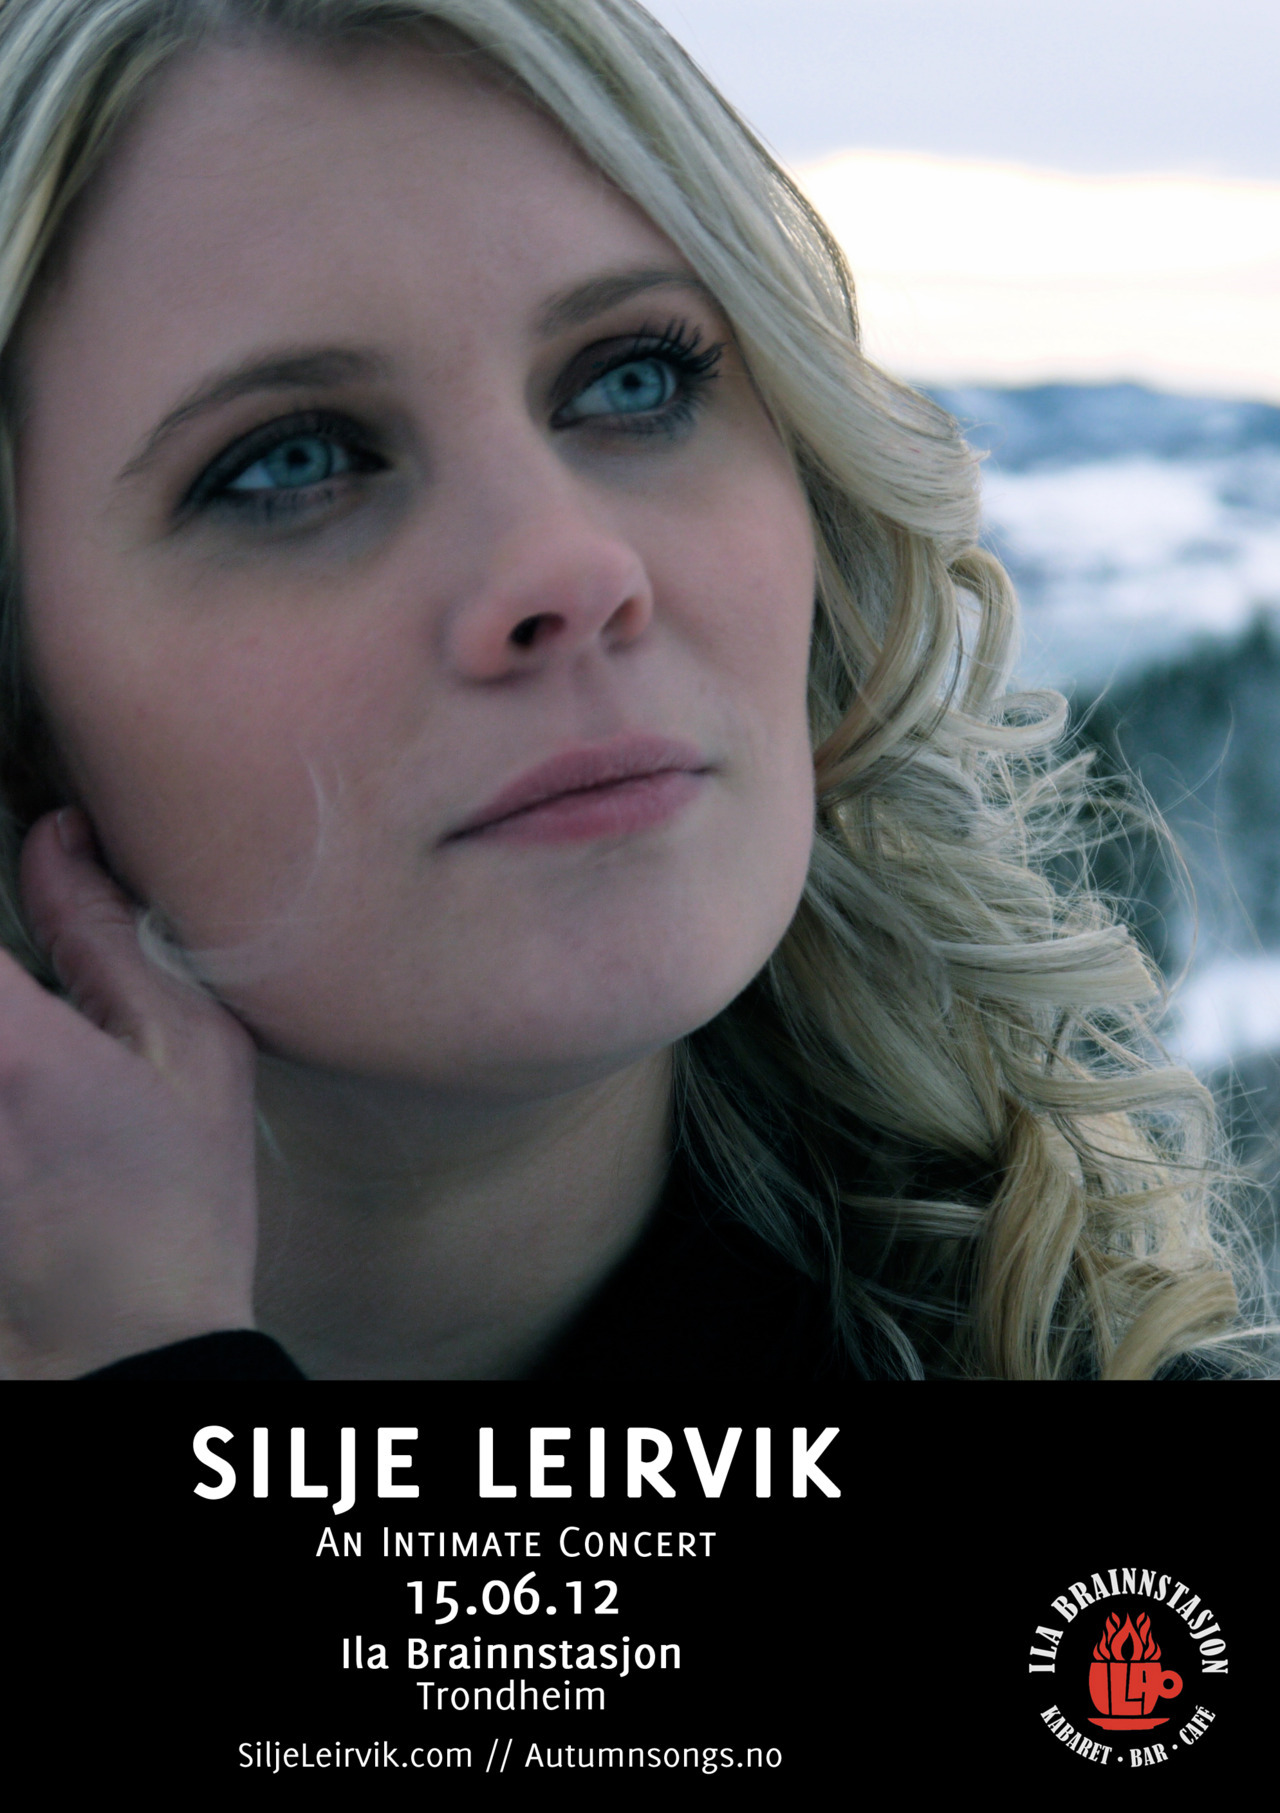 The poster for Silje's forthcoming concert in Trondheim.